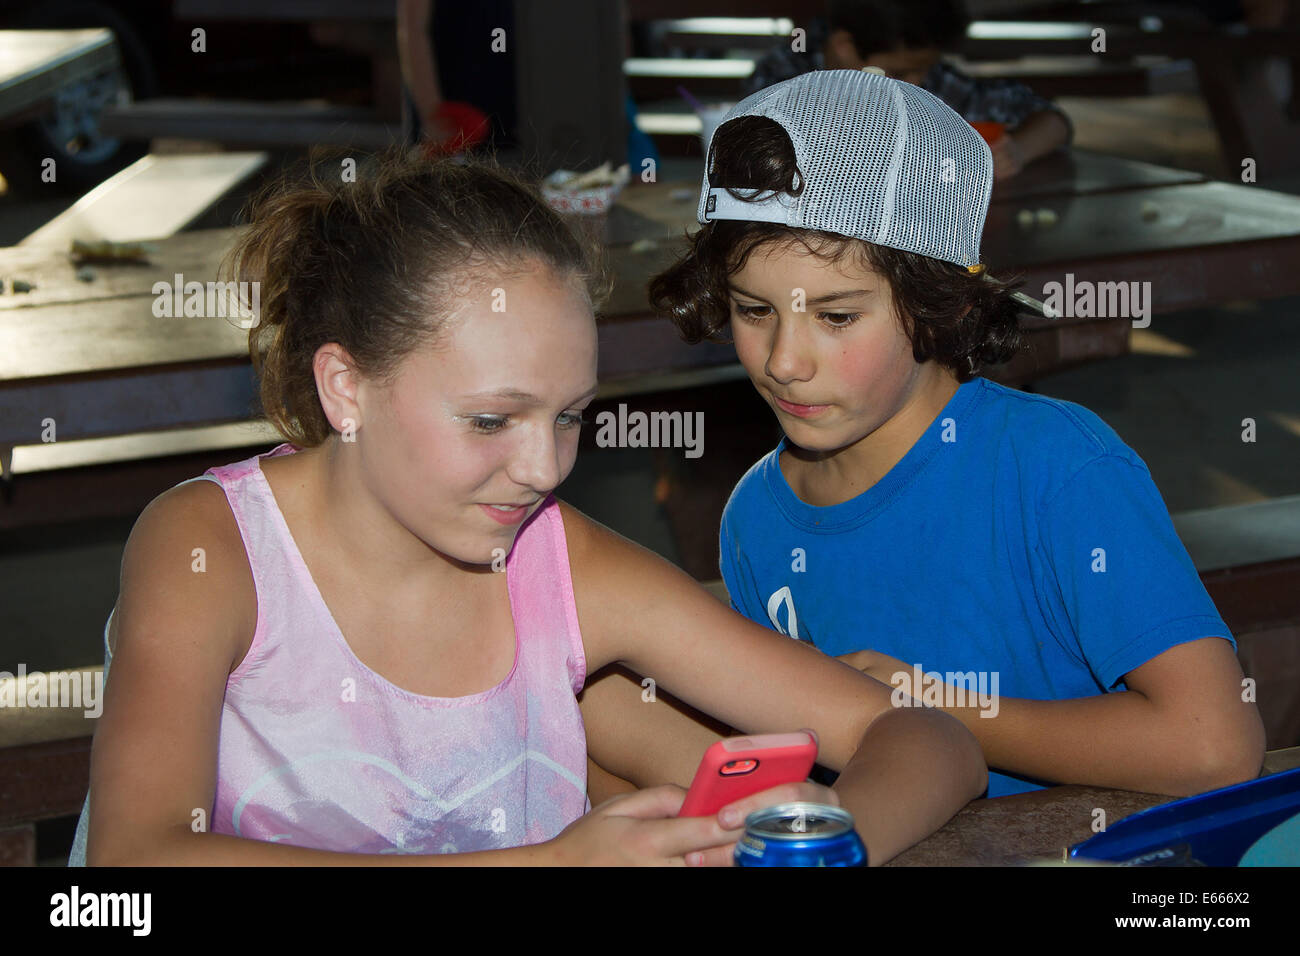 A boy and girl texting and having fun with a cellphone. - Stock Image